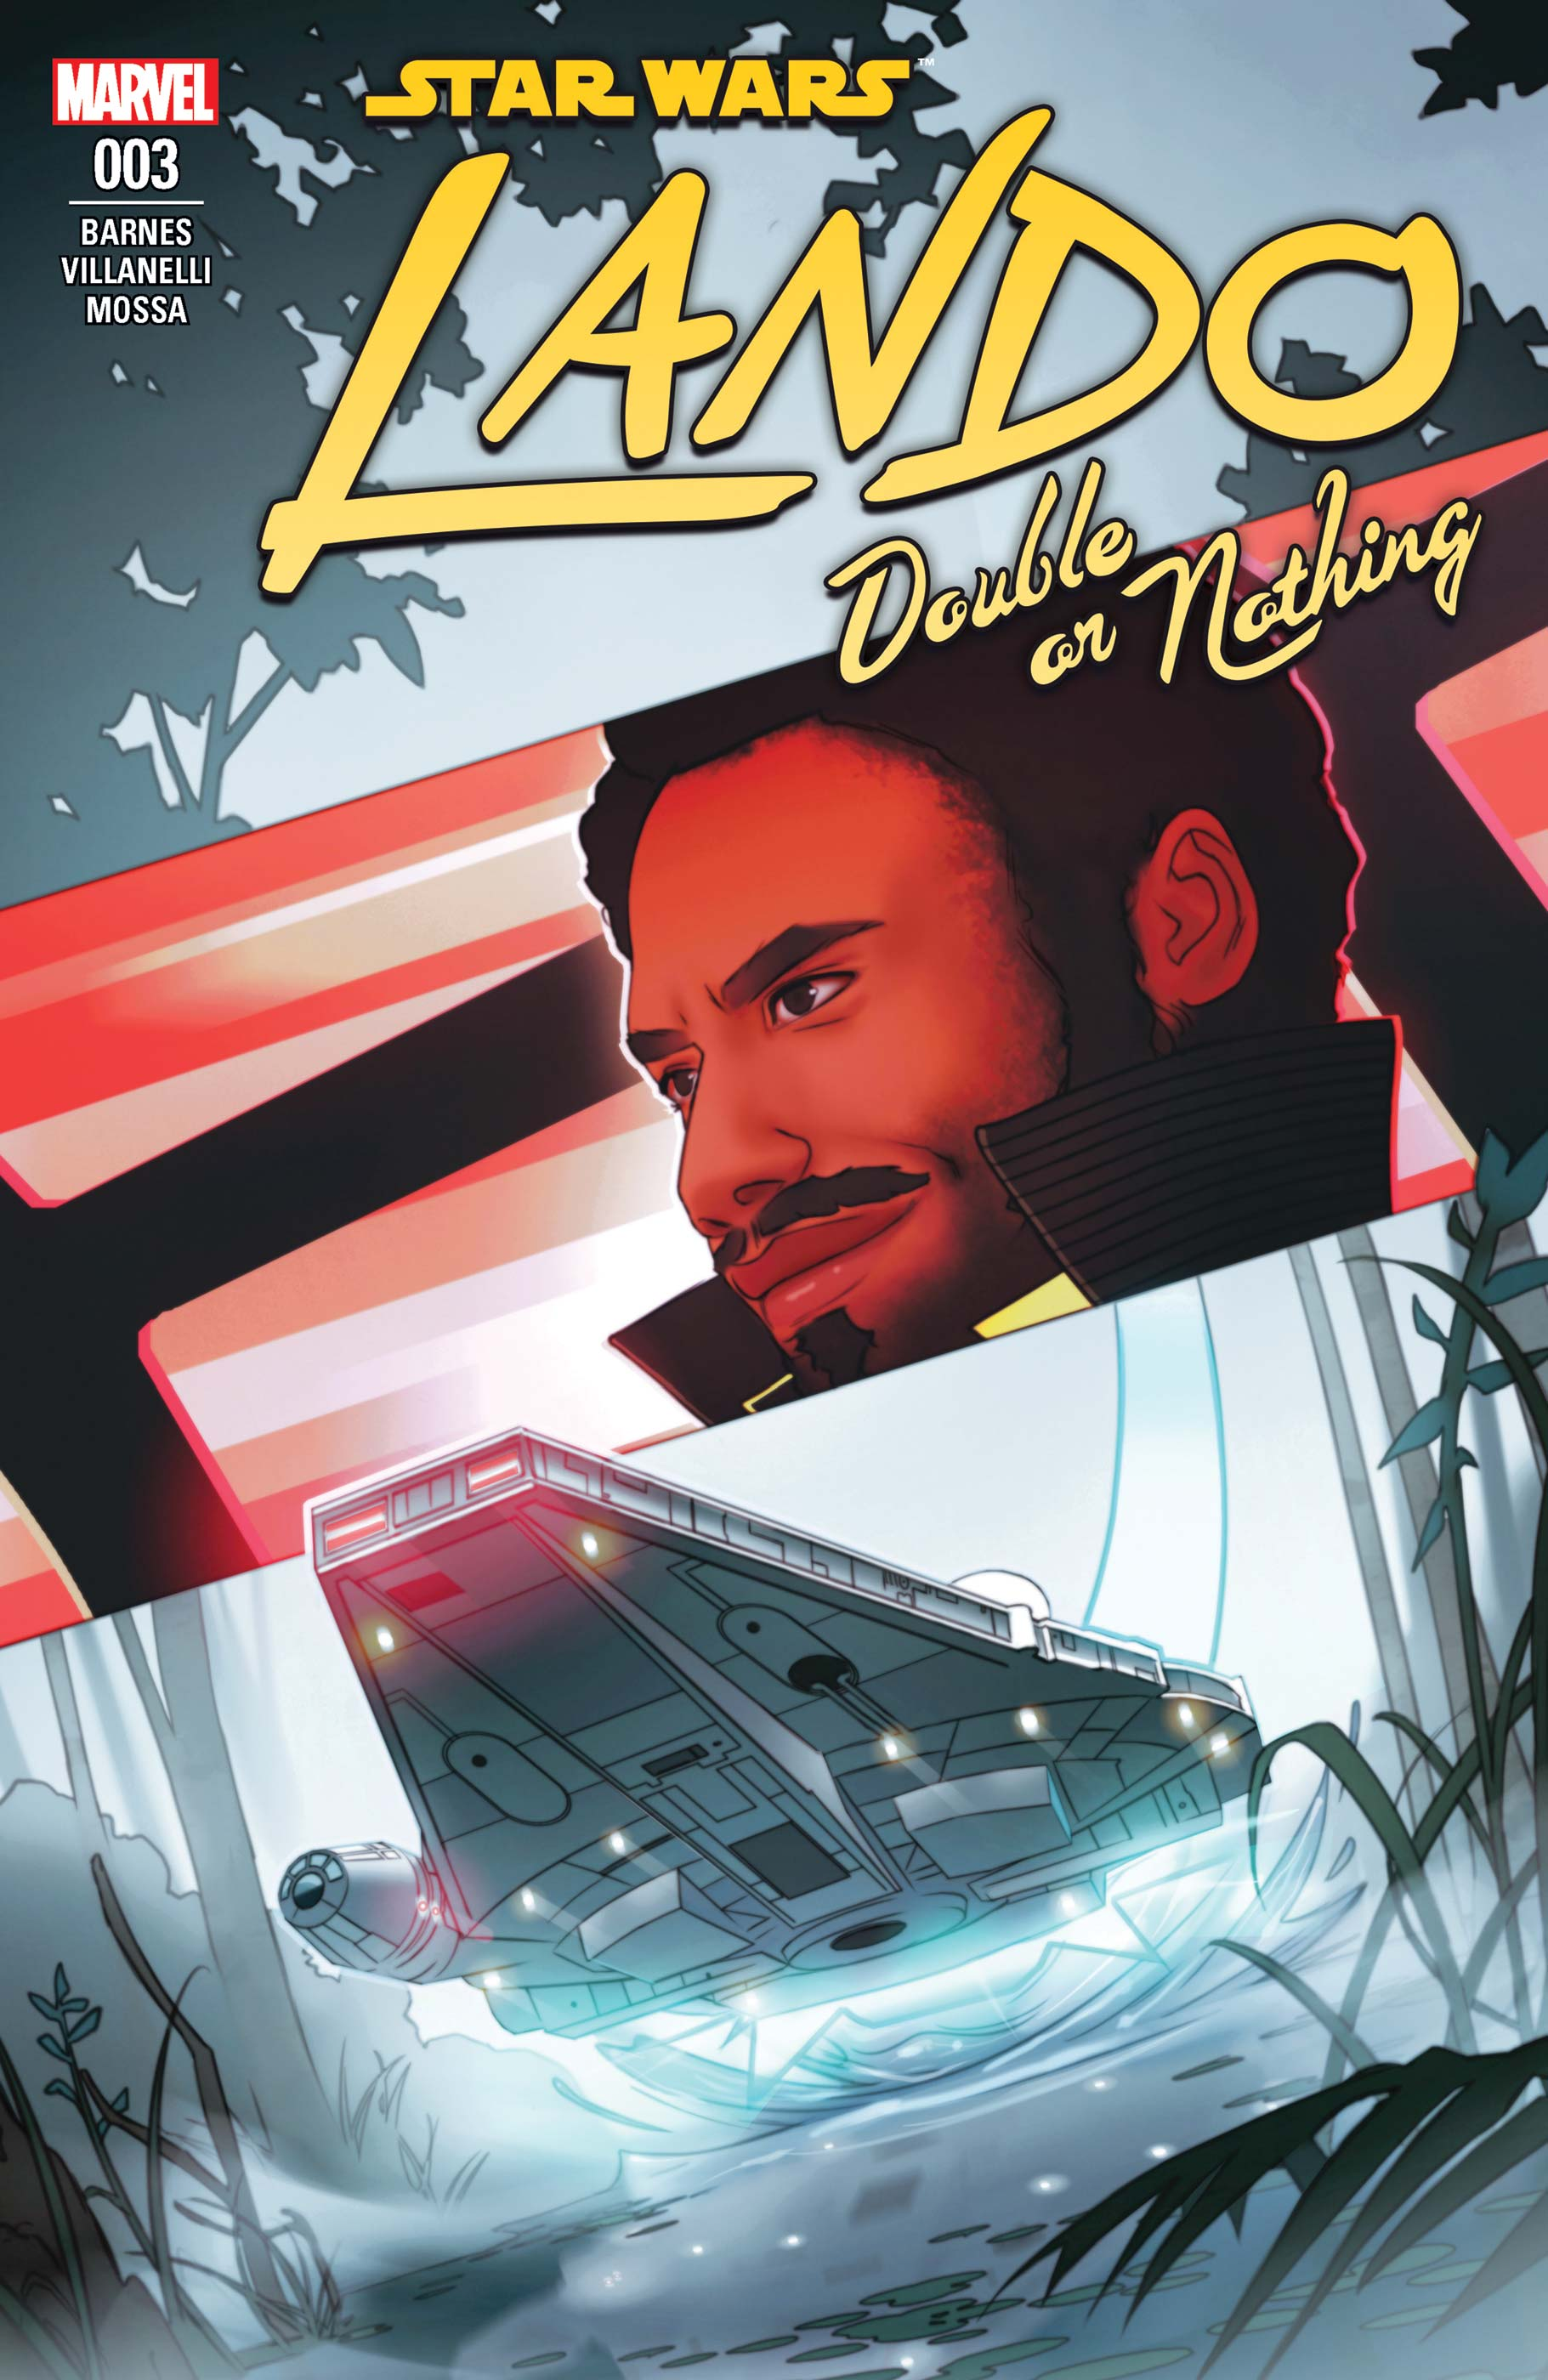 Star Wars: Lando - Double or Nothing (2018) #3